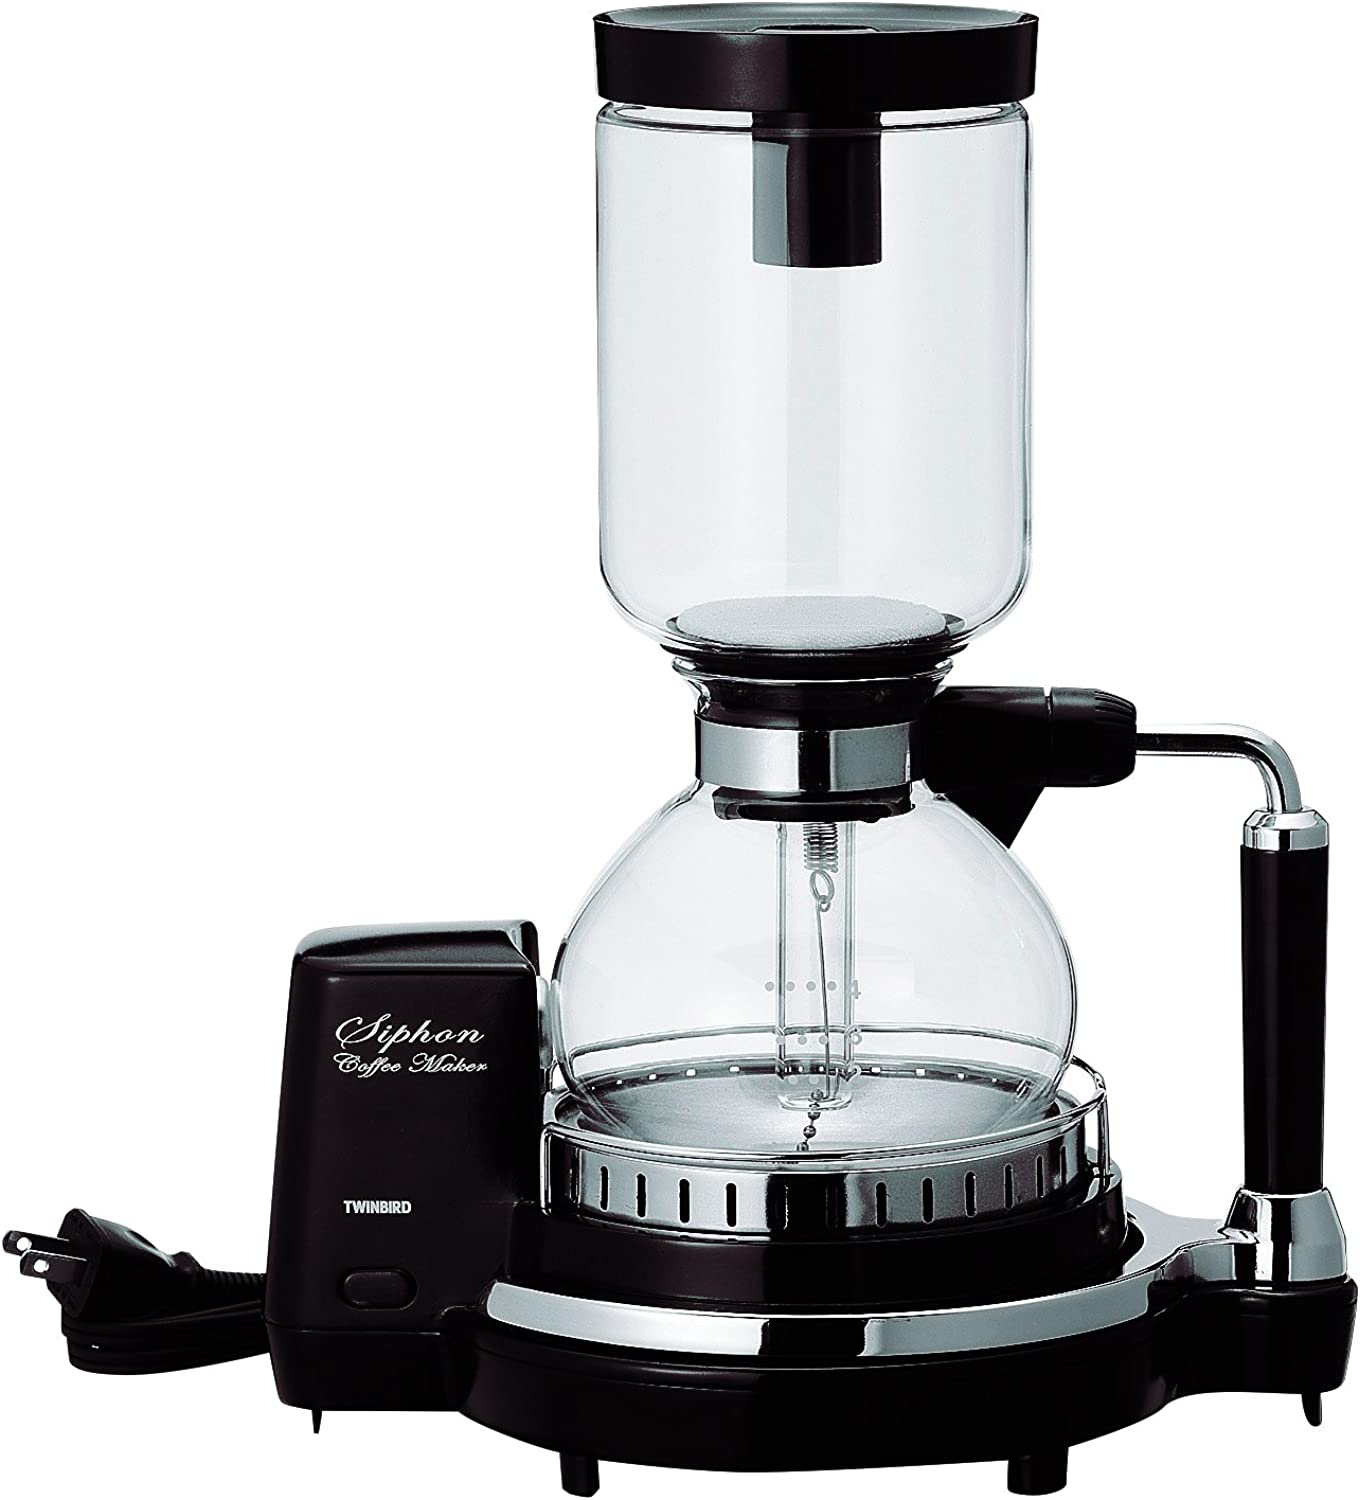 TWINBIRD siphon coffee maker CM-D854BR (Brown)